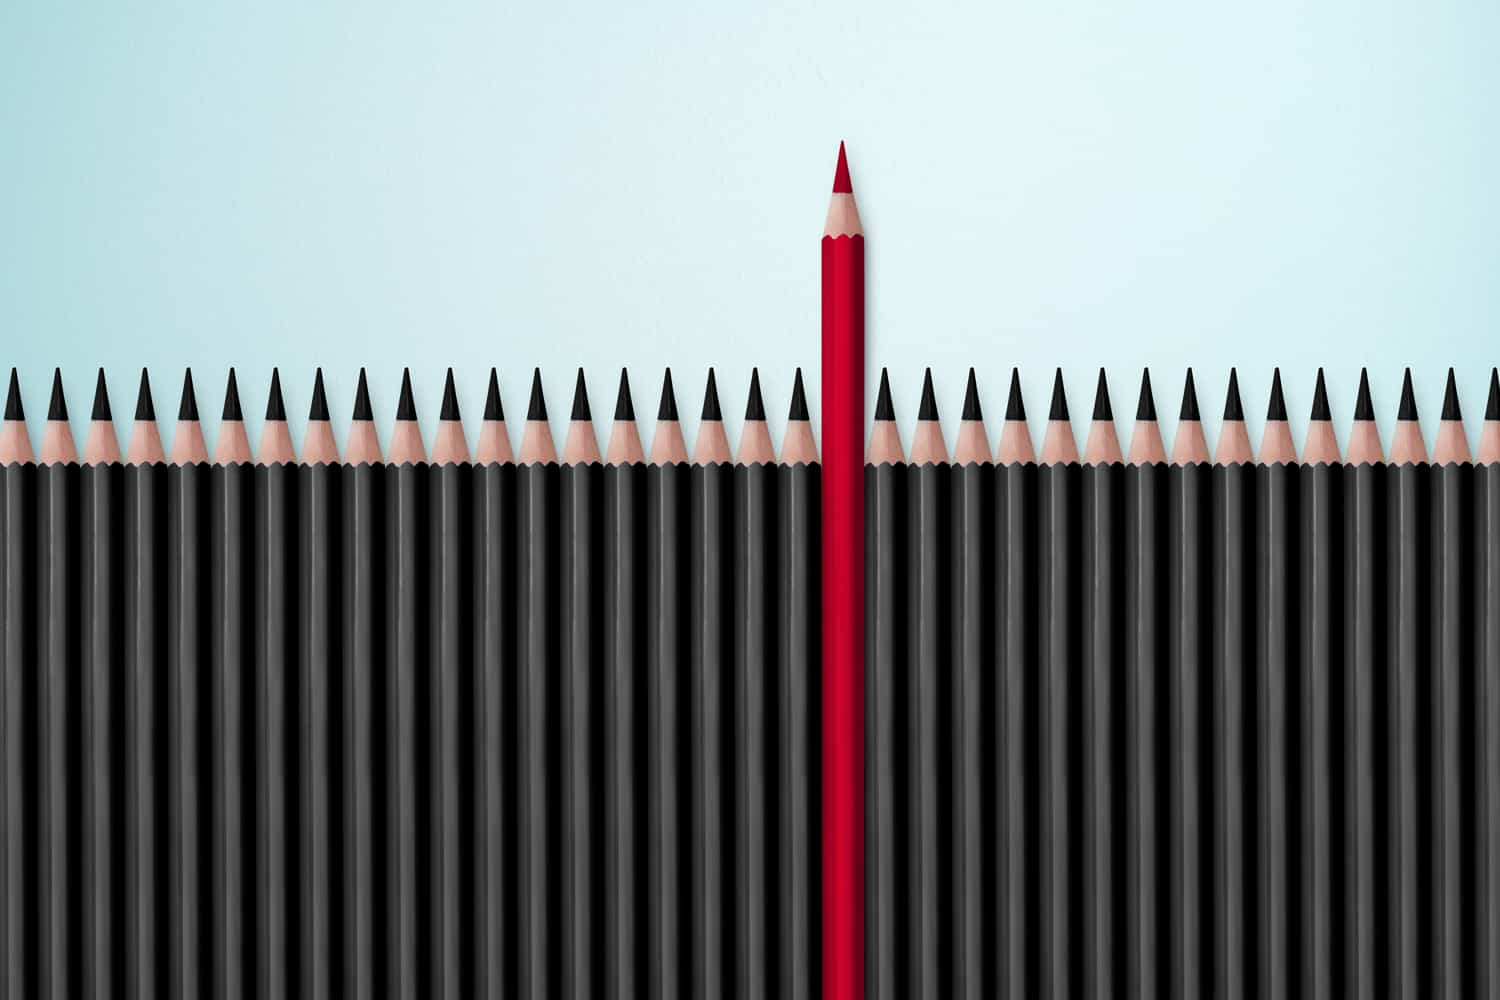 A red pencil stands out among a line of black pencils, ready to handle all types of editing needs.